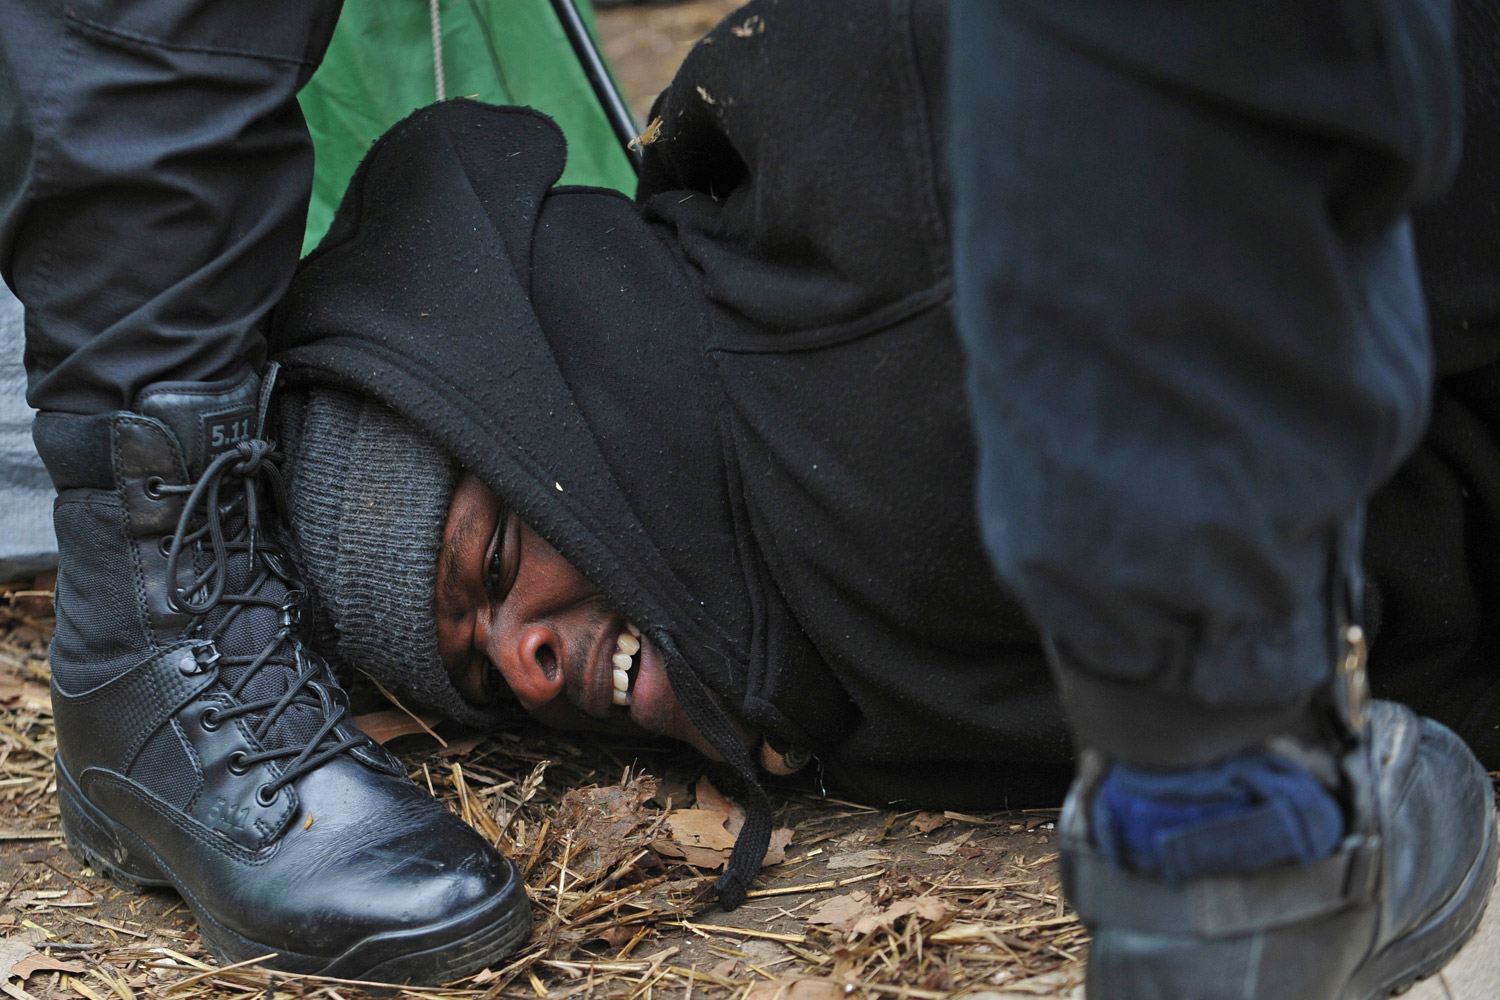 February 4, 2012. US Park Police arrest an Occupy D.C. movement protester at McPherson Square in Washington, D.C.